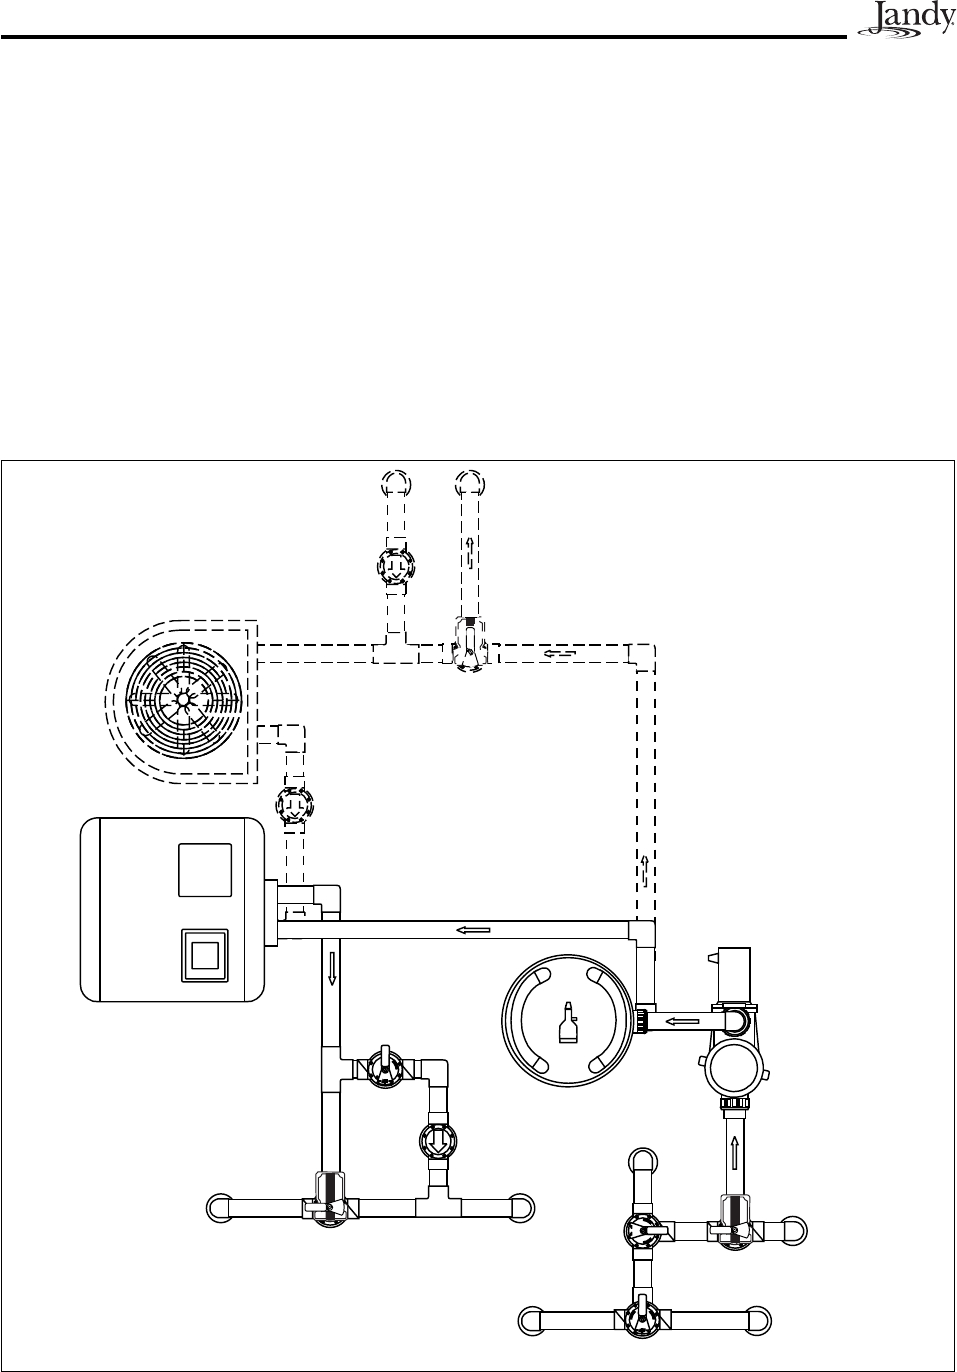 jandy 4 button spa side remote wiring diagram gallery